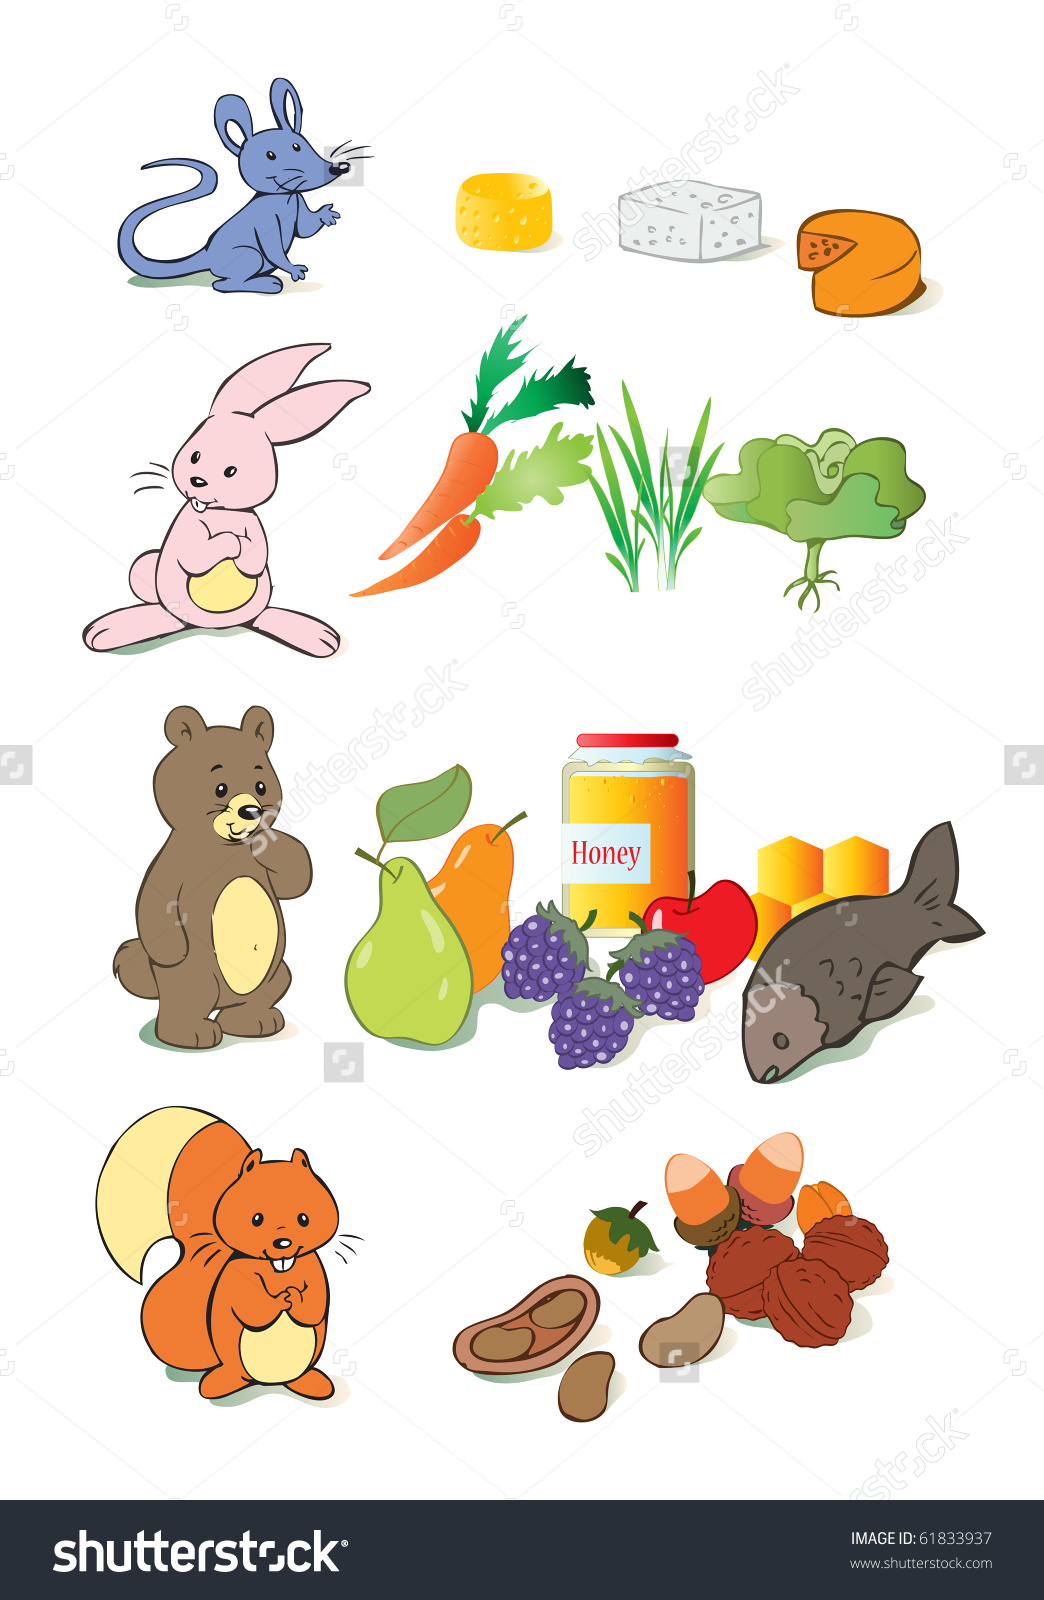 Food for animals clipart clip transparent stock Vector Illustration Animals Favourite Food Education Stock Vector ... clip transparent stock